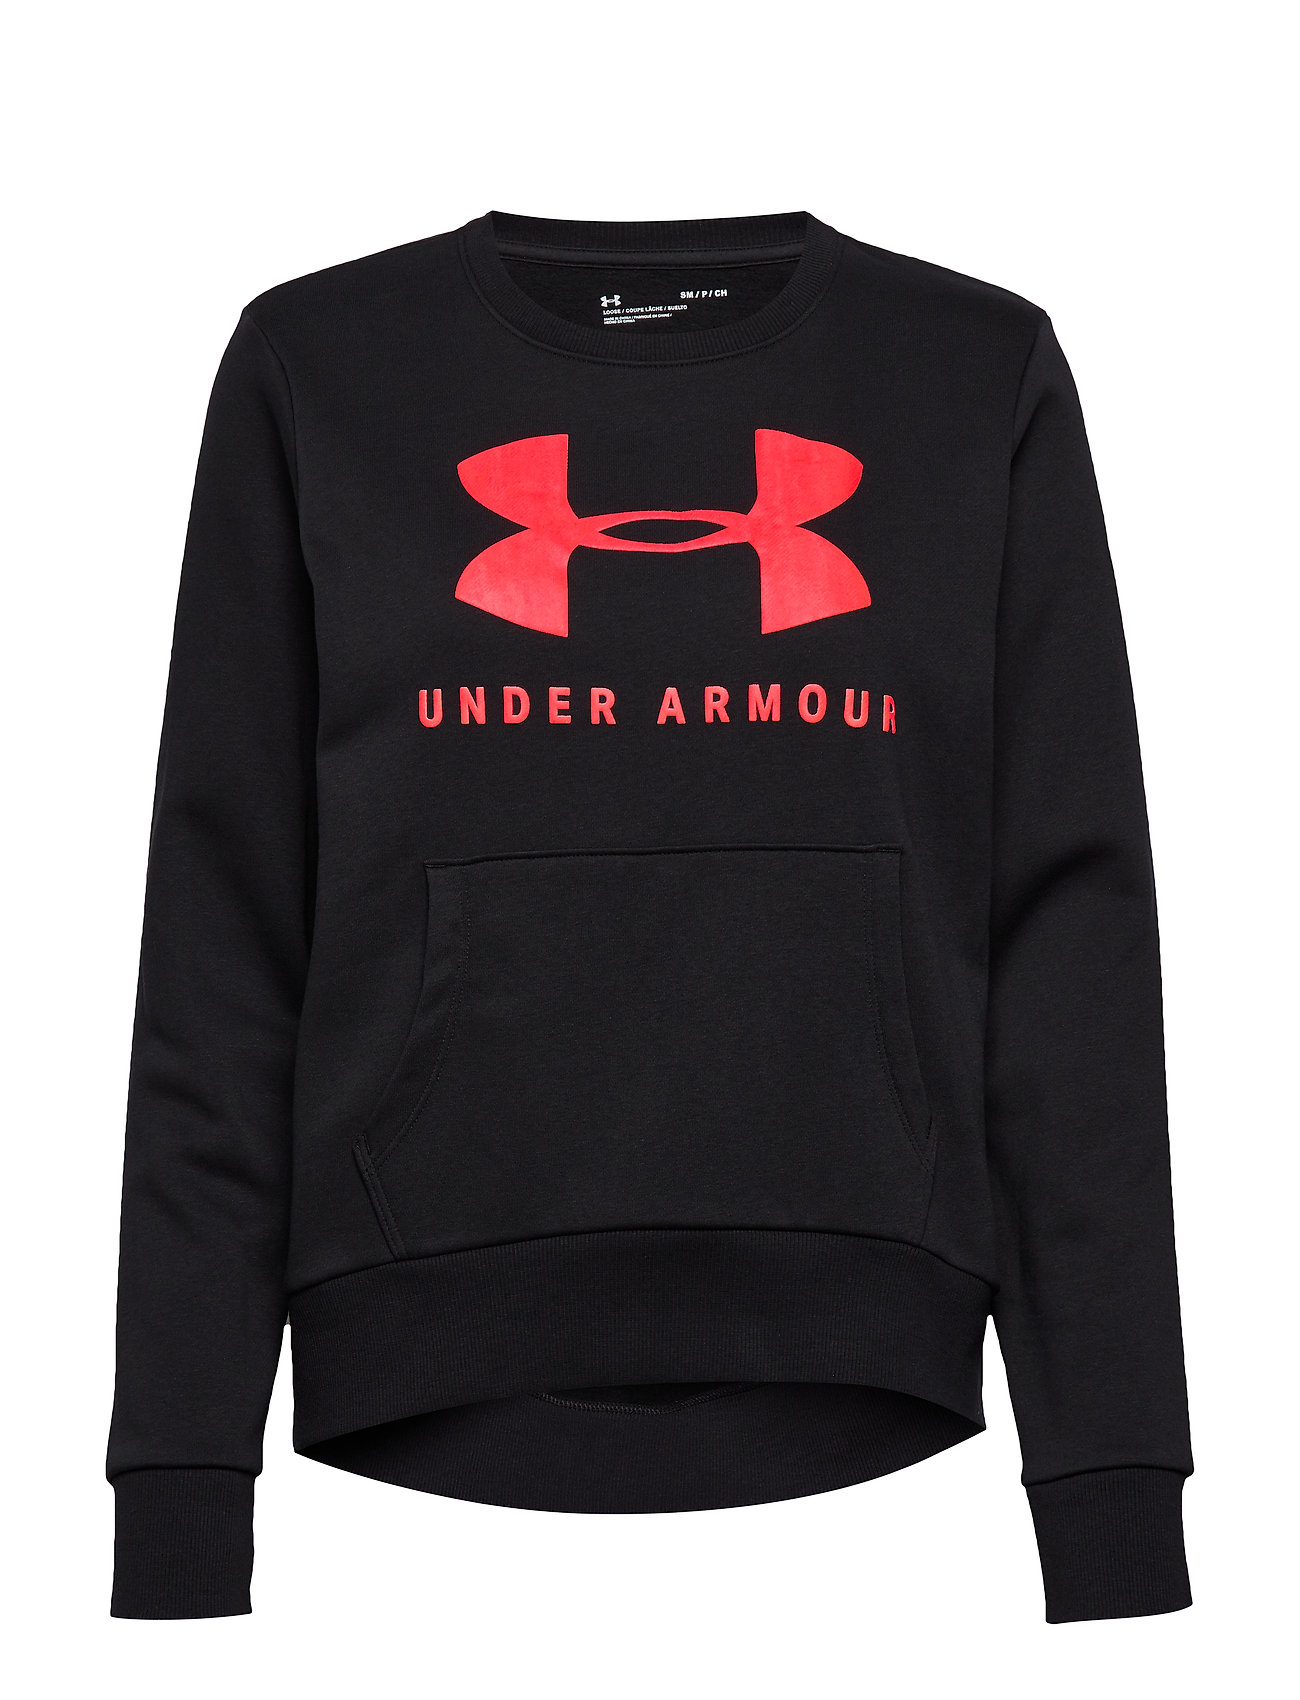 Under Armour 12.1 RIVAL FLEECE SPORTSTYLE GRAPHIC CREW - BLACK